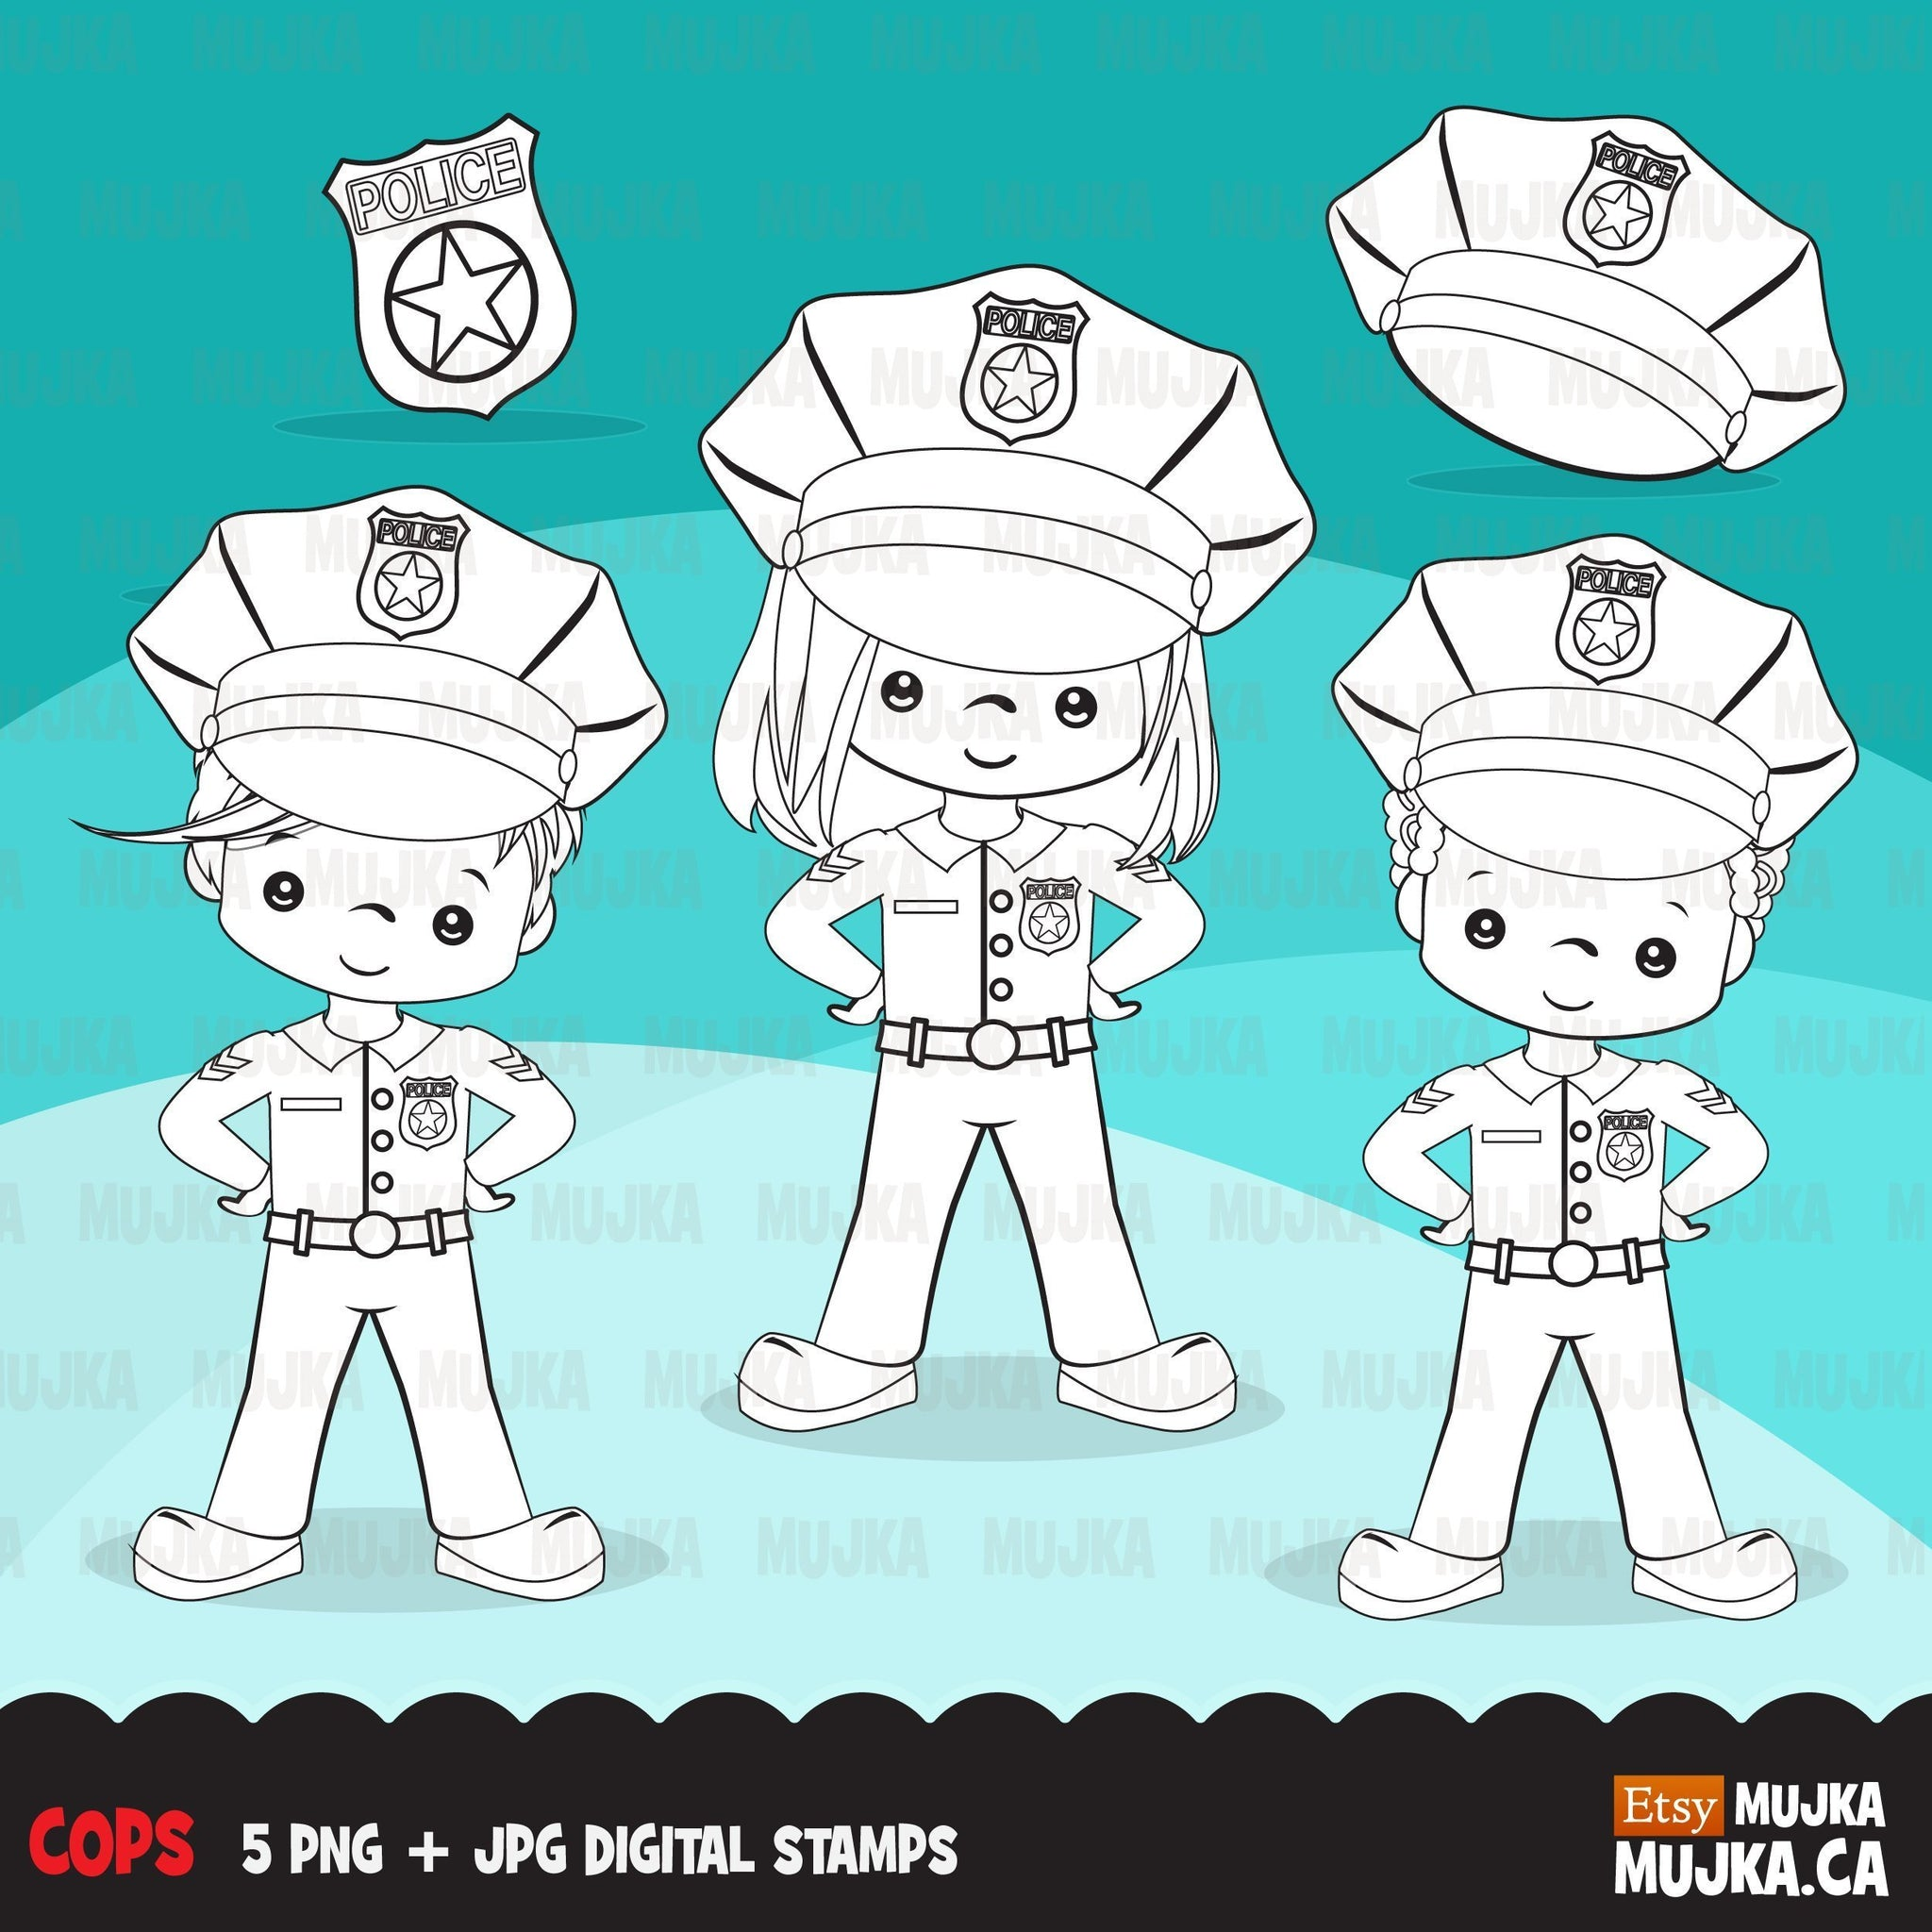 Cops, police officer Digital Stamps, Girl and Boy